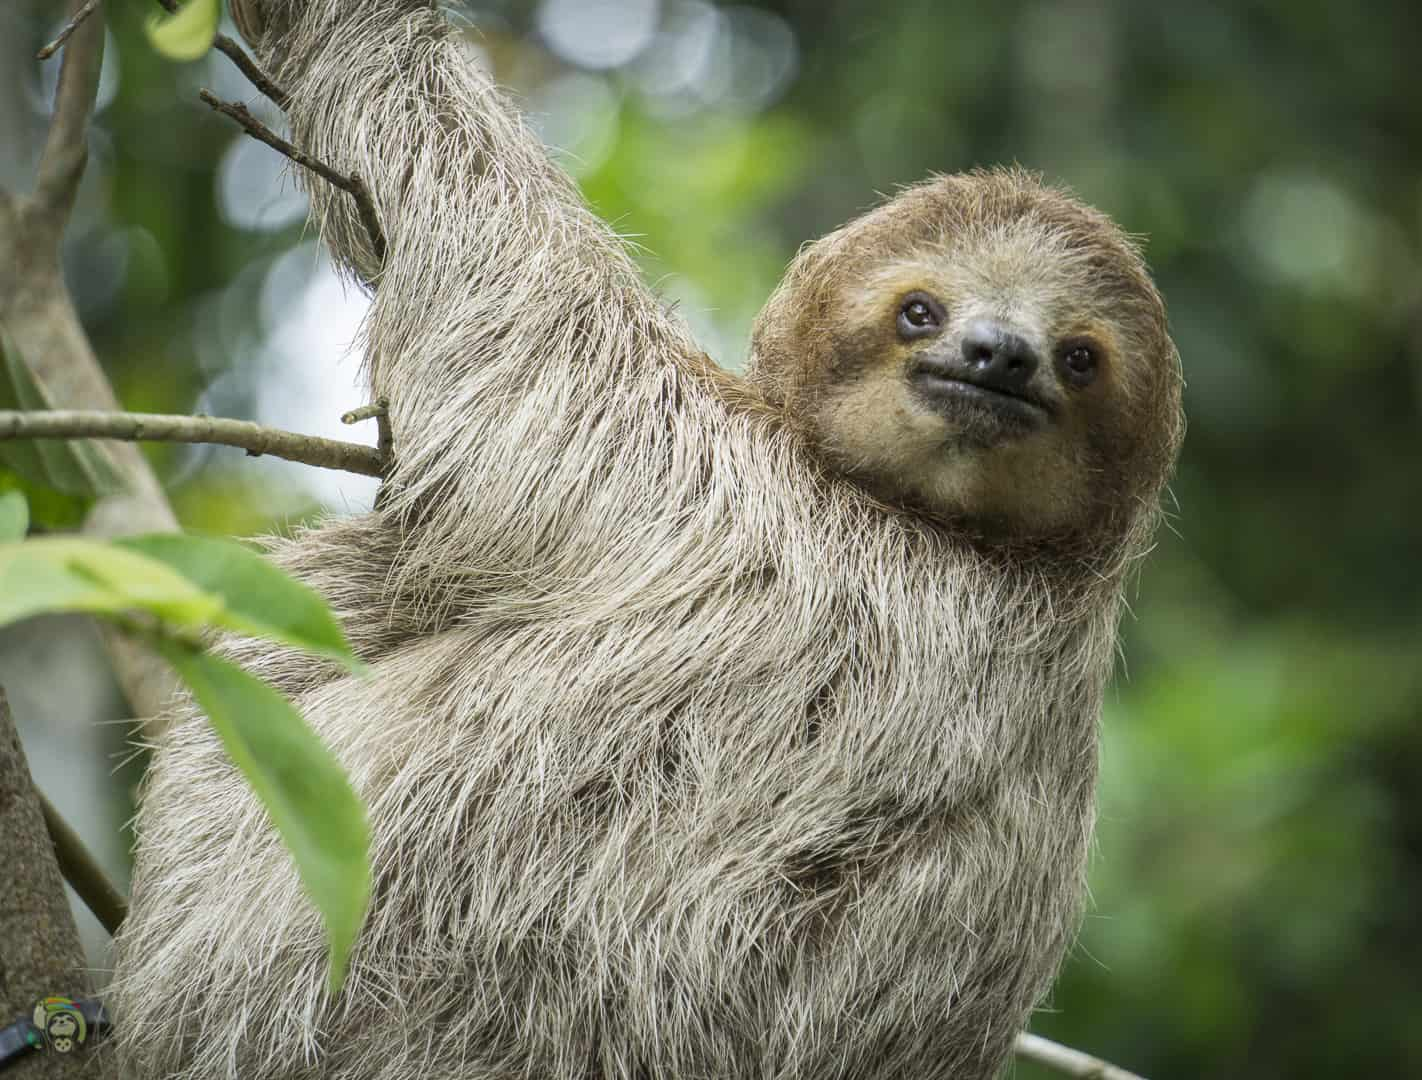 Mystique the sloth